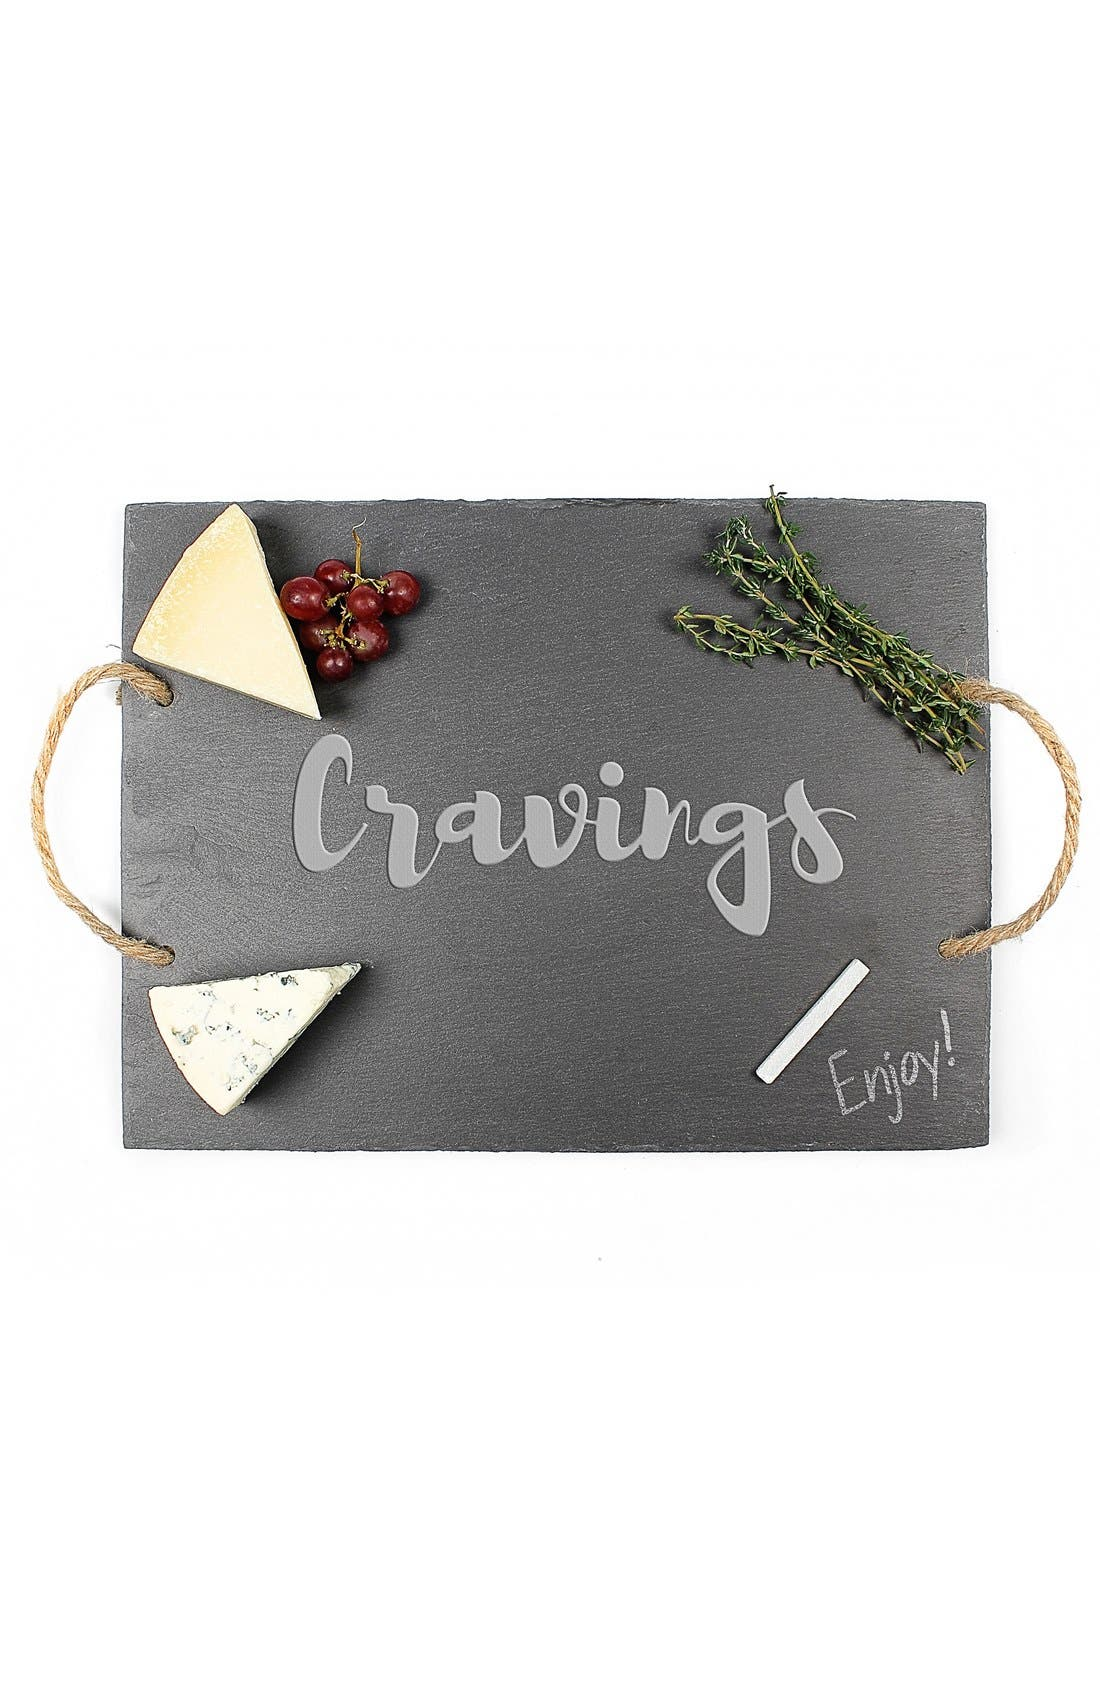 Alternate Image 1 Selected - Cathy's Concepts 'Cravings' Slate Serving Board